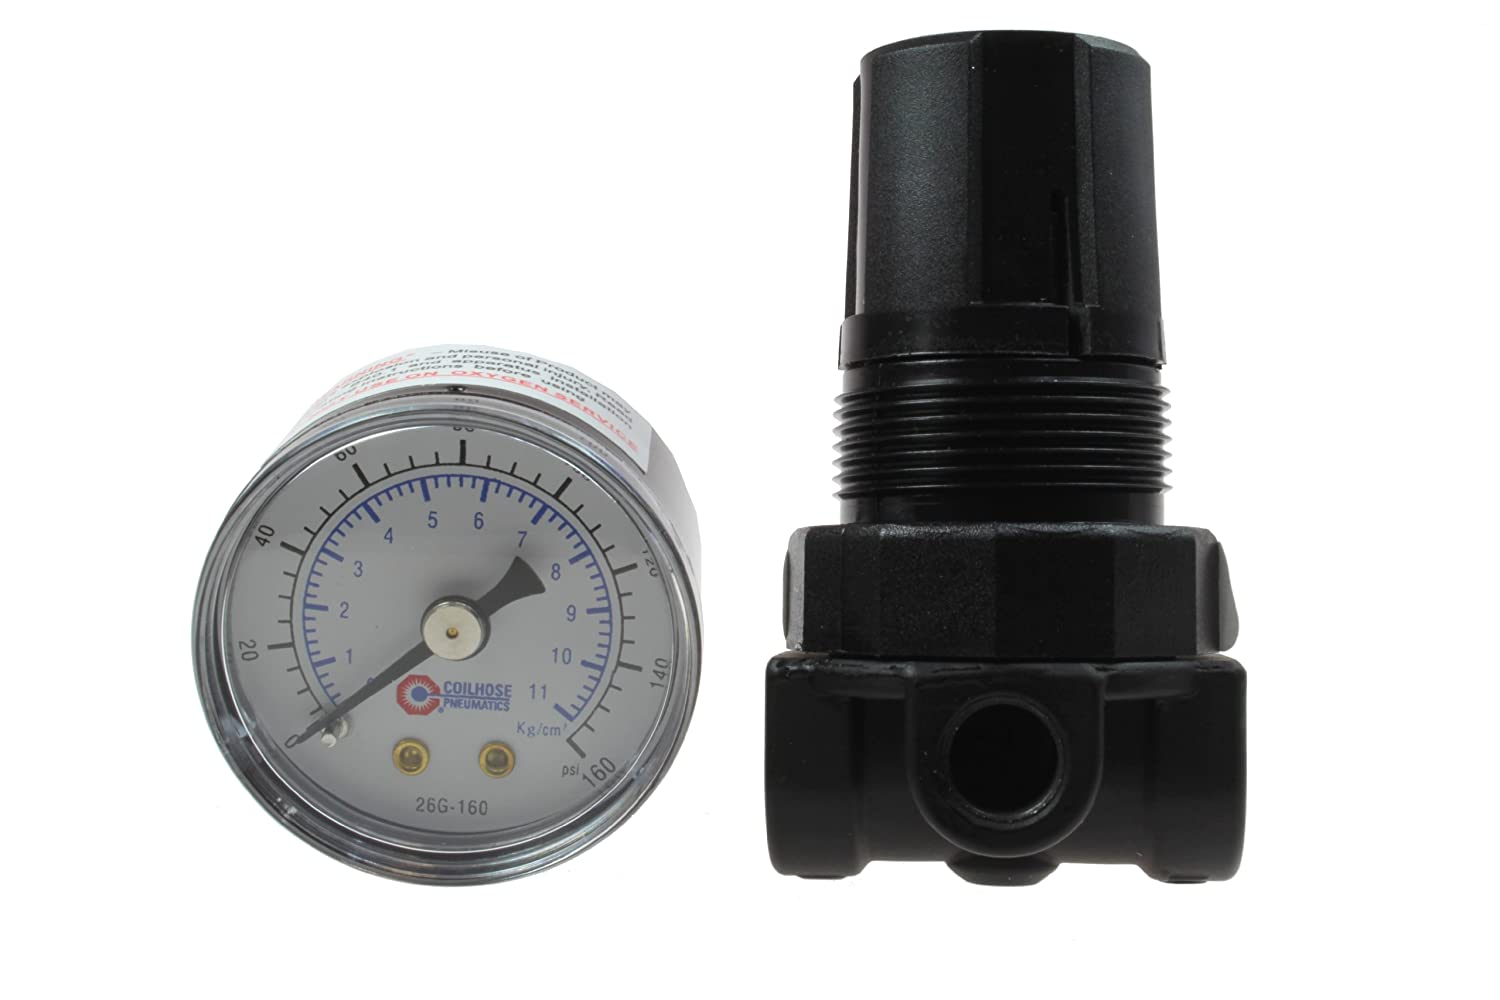 1//4-Inch Pipe Size Coilhose Pneumatics MR2-GL Miniature Series Regulator with Gauge and Low Pressure Spring